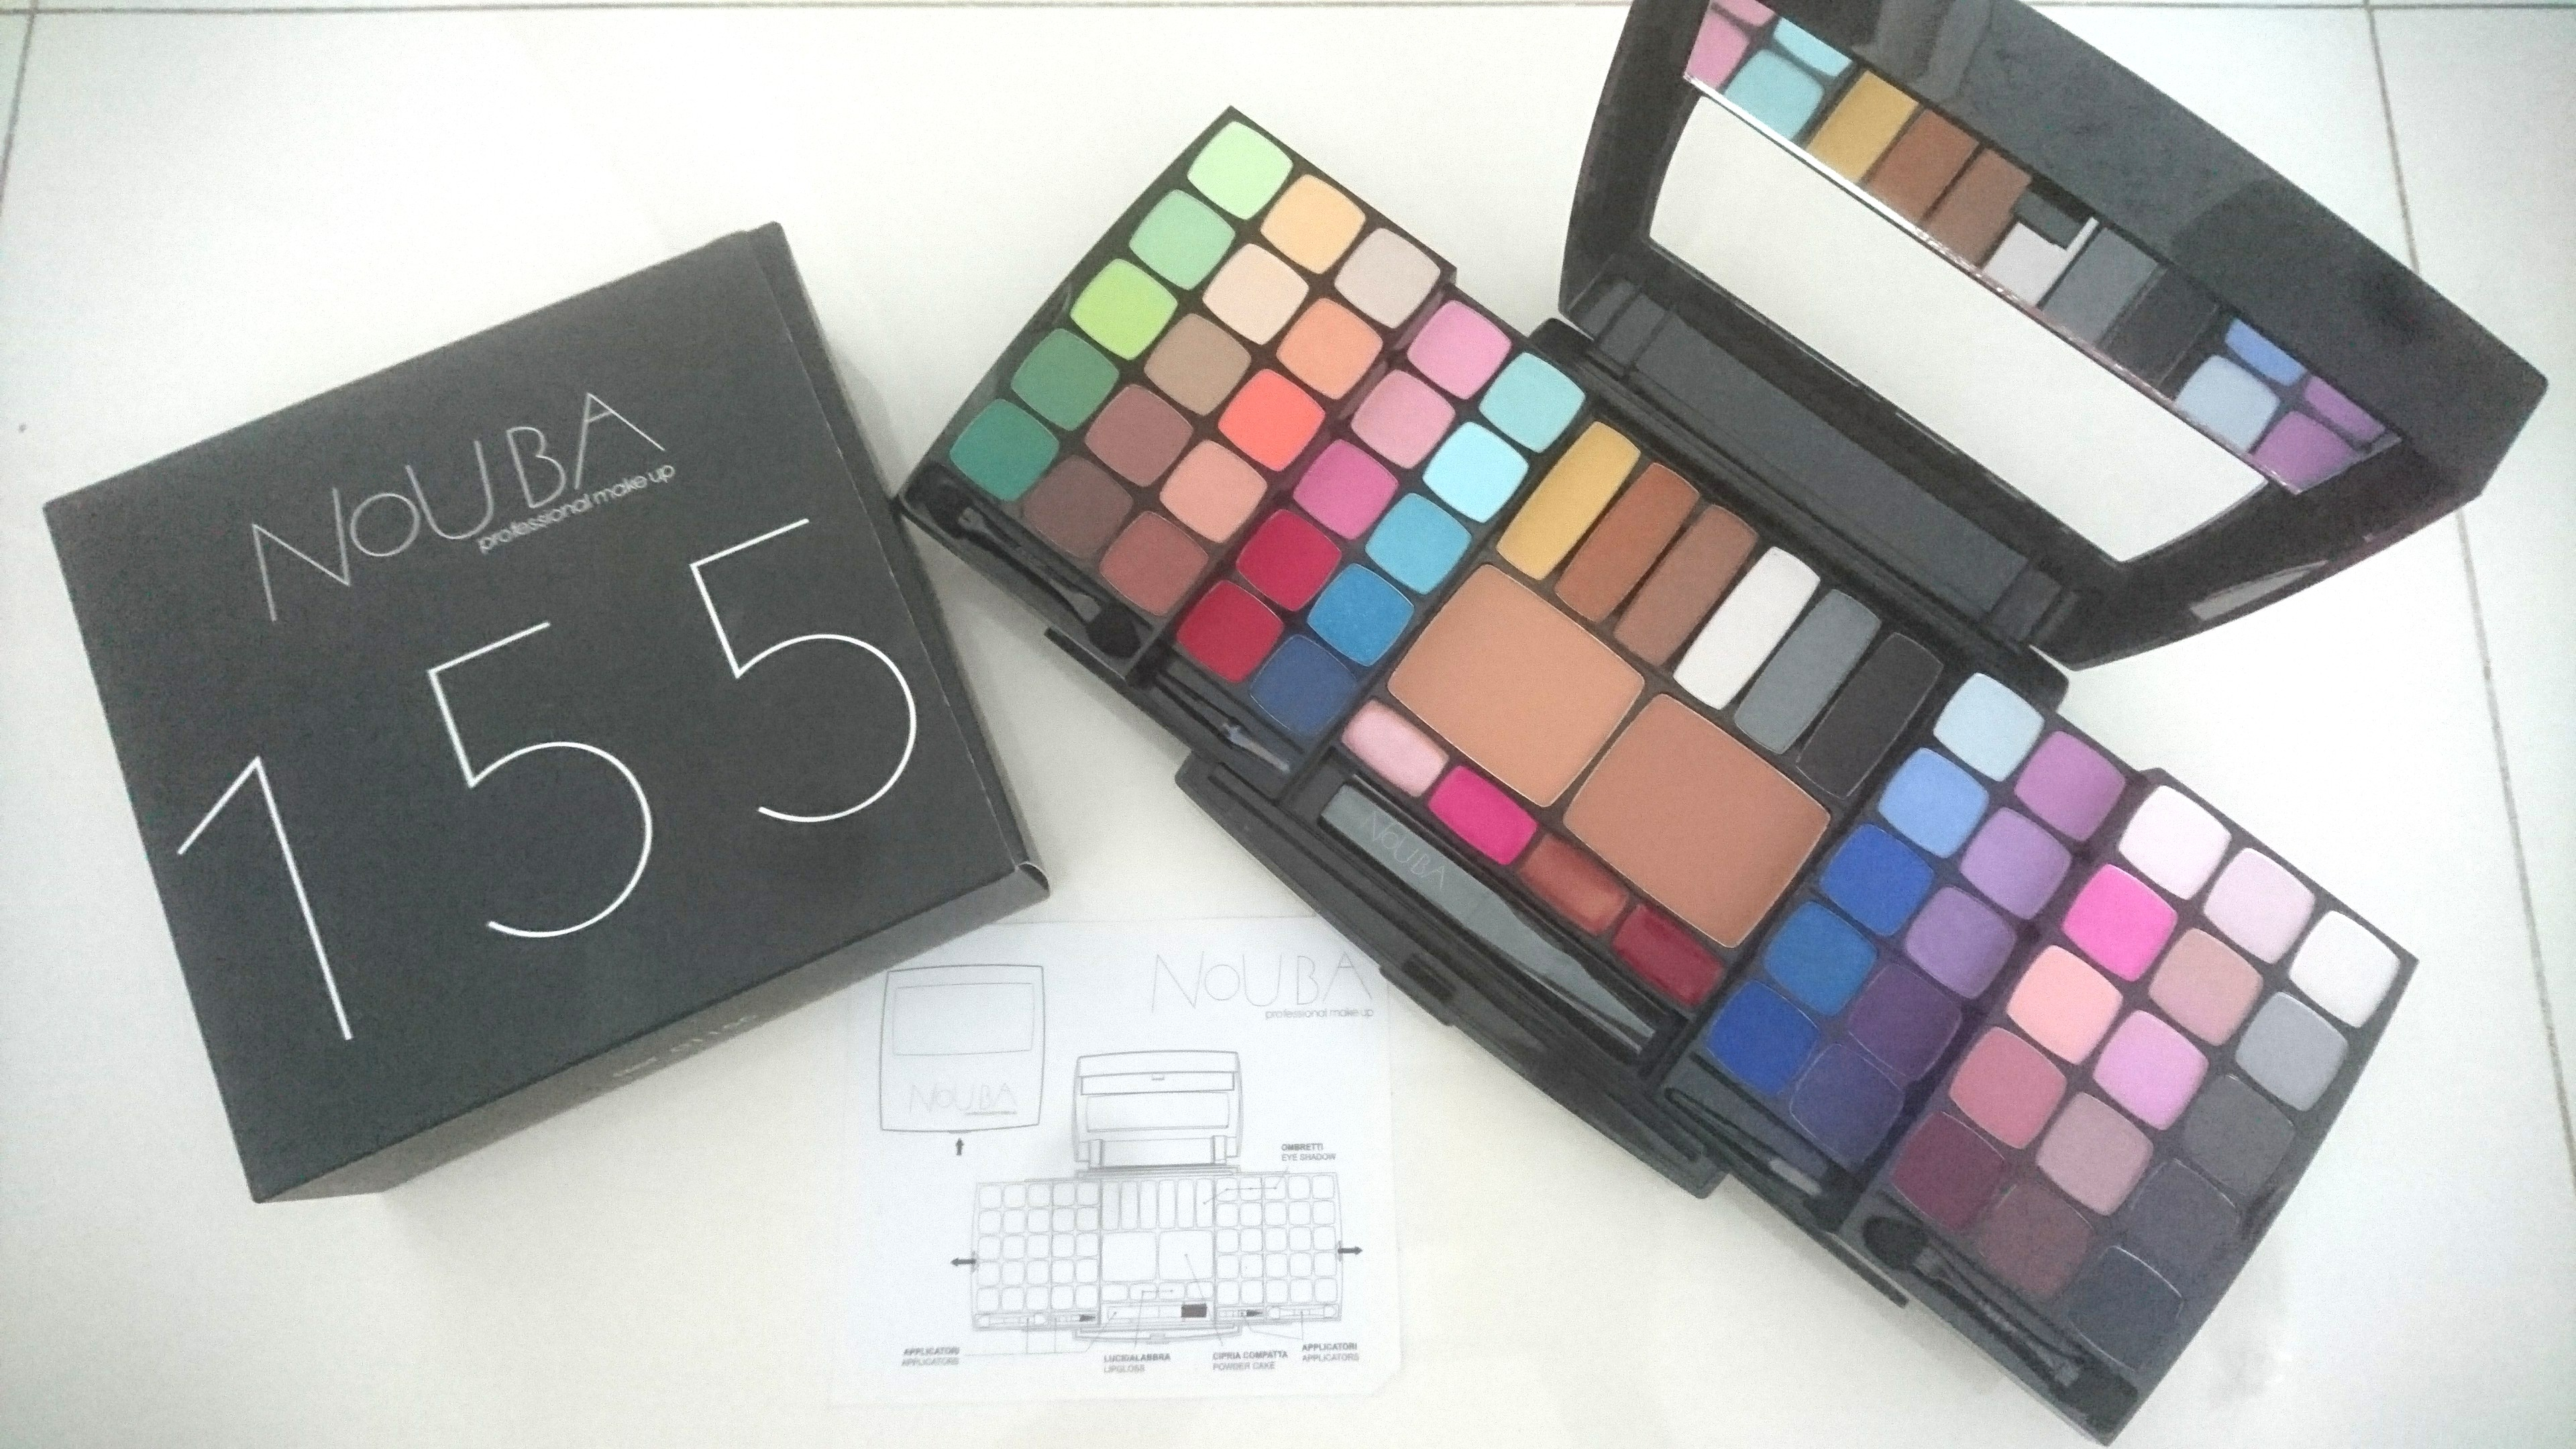 50 Nouba Make Up Palette Health